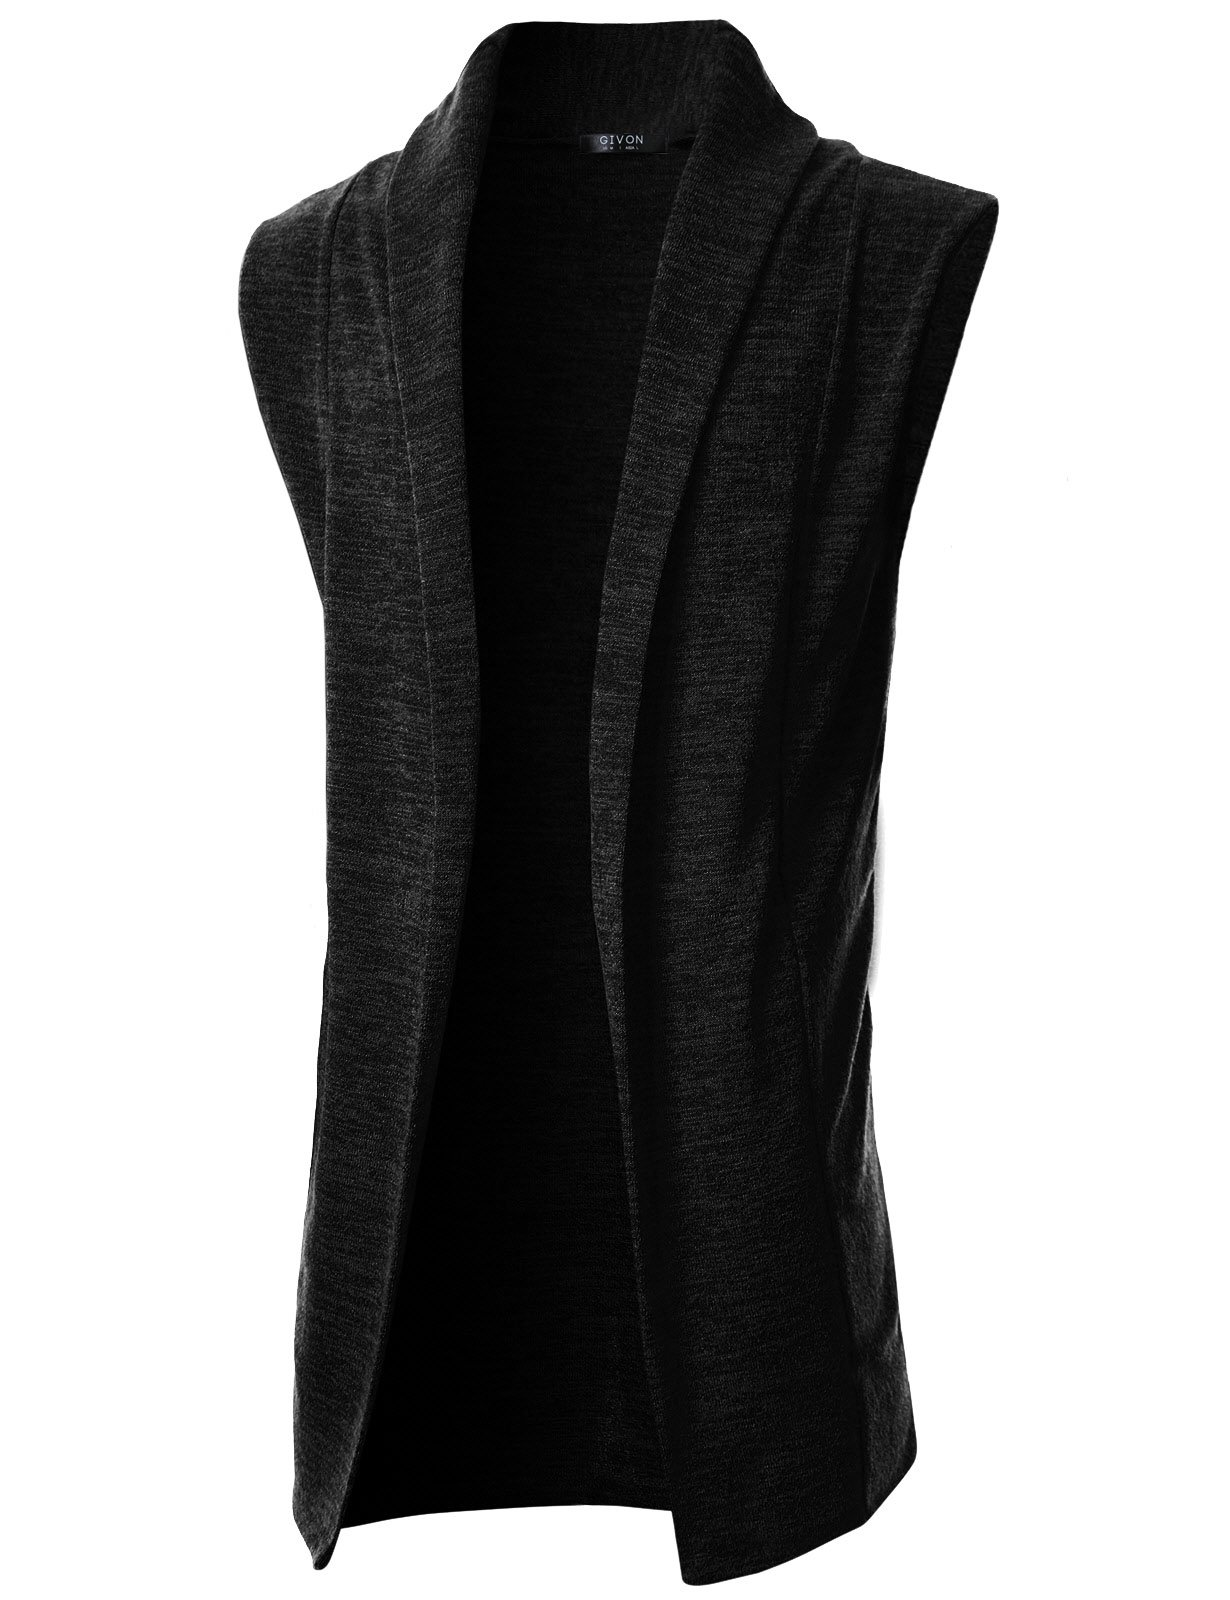 GIVON Mens Sleeveless Draped Open Front Shawl Collar Knitted Long Vest/DCC031-BLACK-XL by GIVON